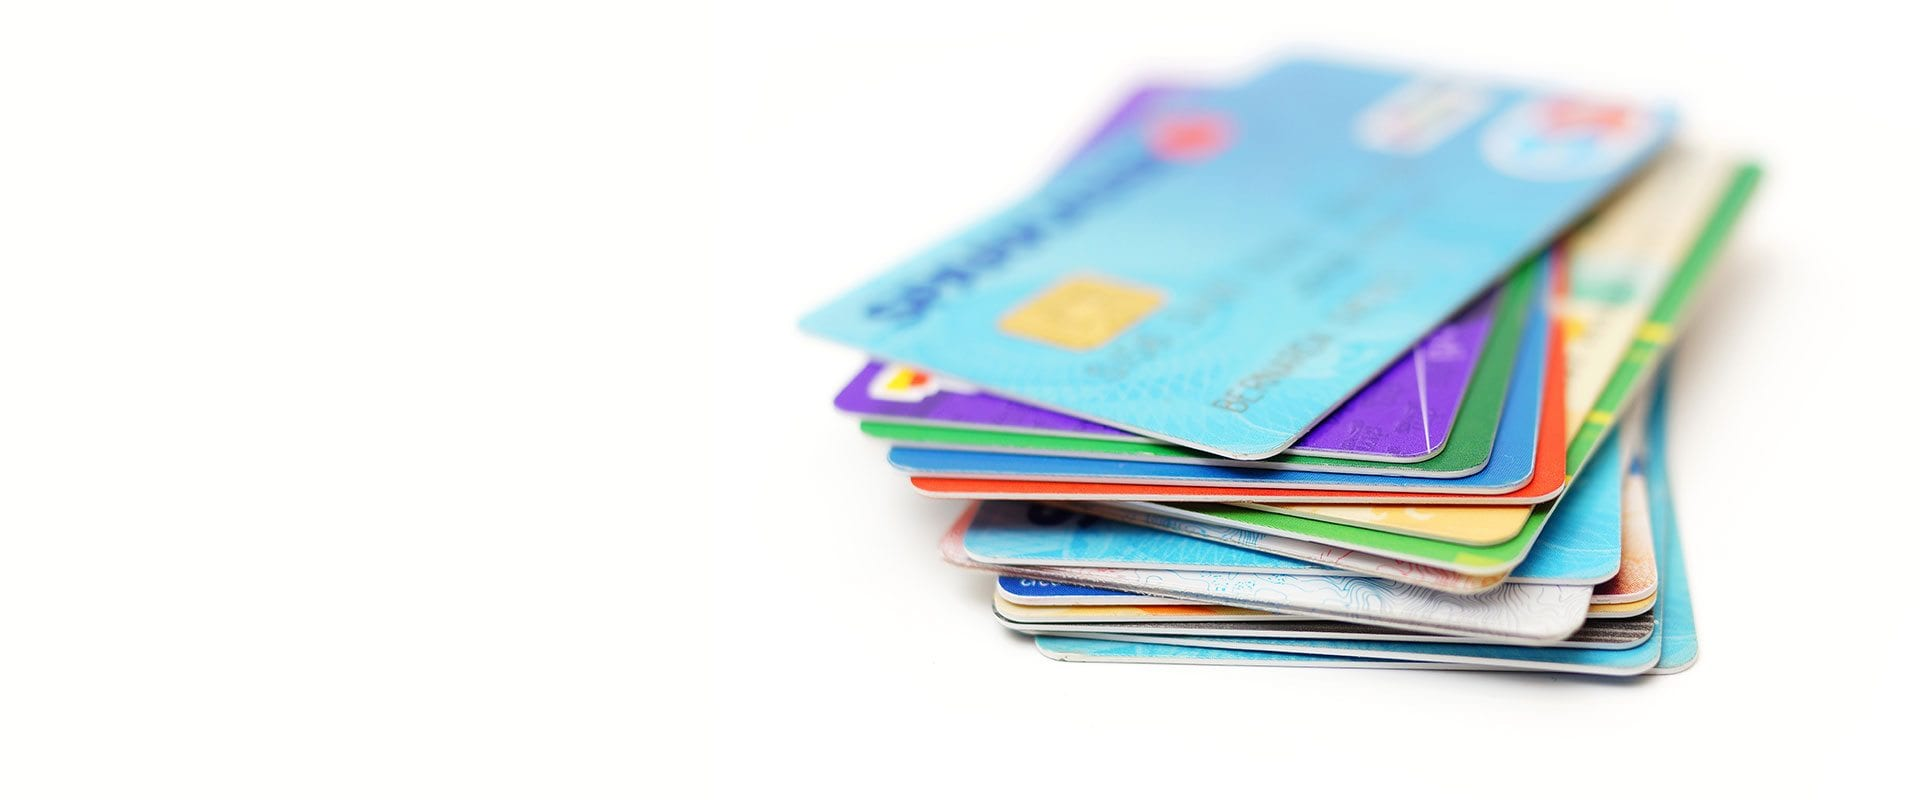 PCI DSS Compliance   Our Services   Security & Compliance   Loyal IT Technology Solutions